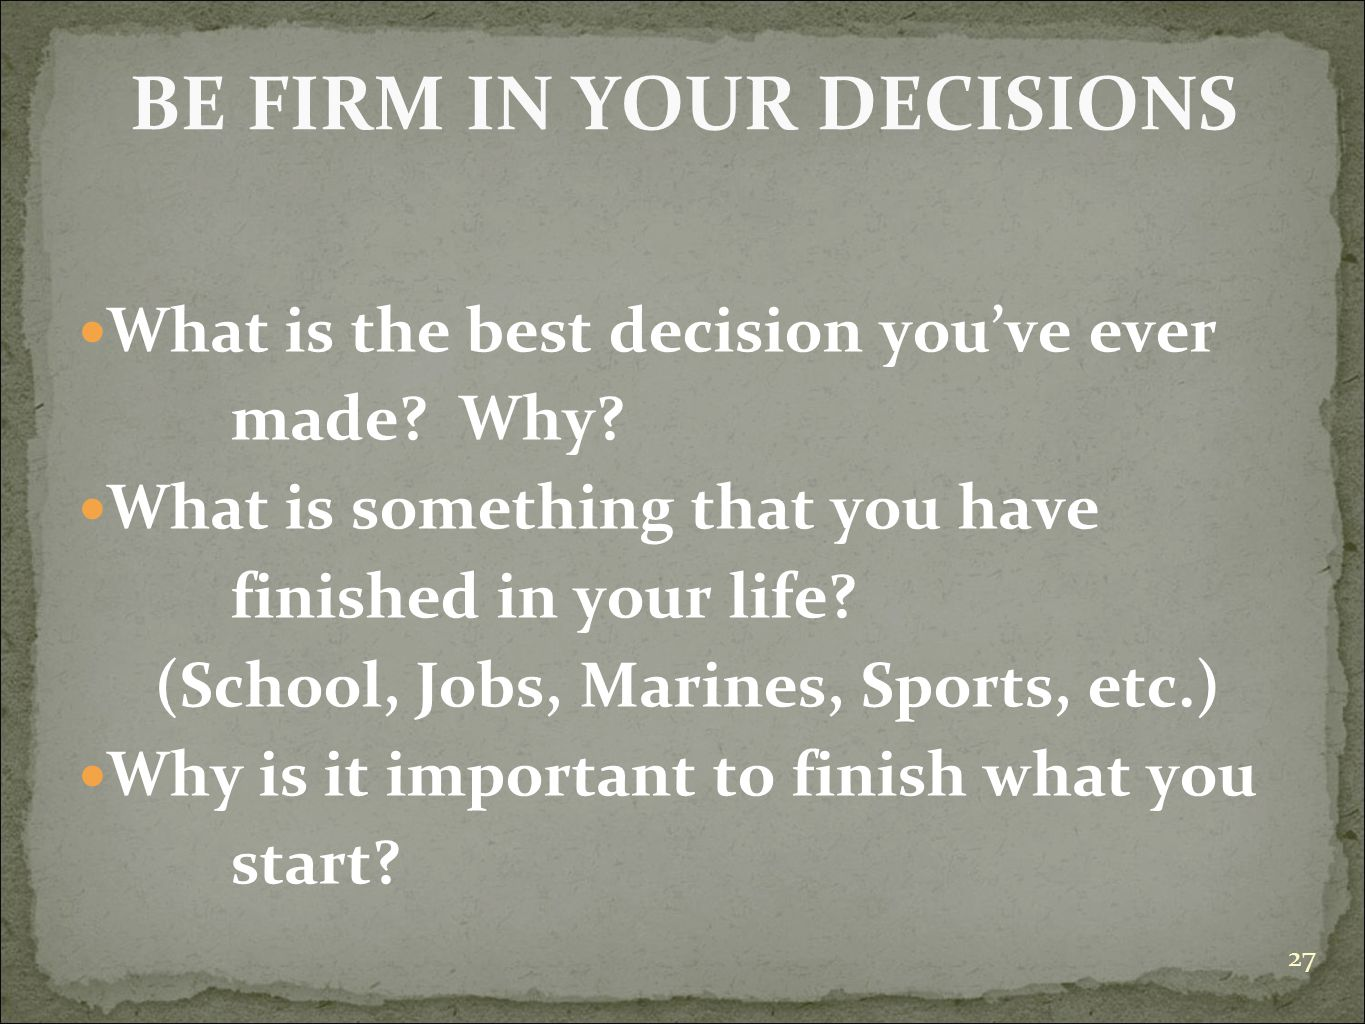 BE FIRM IN YOUR DECISIONS